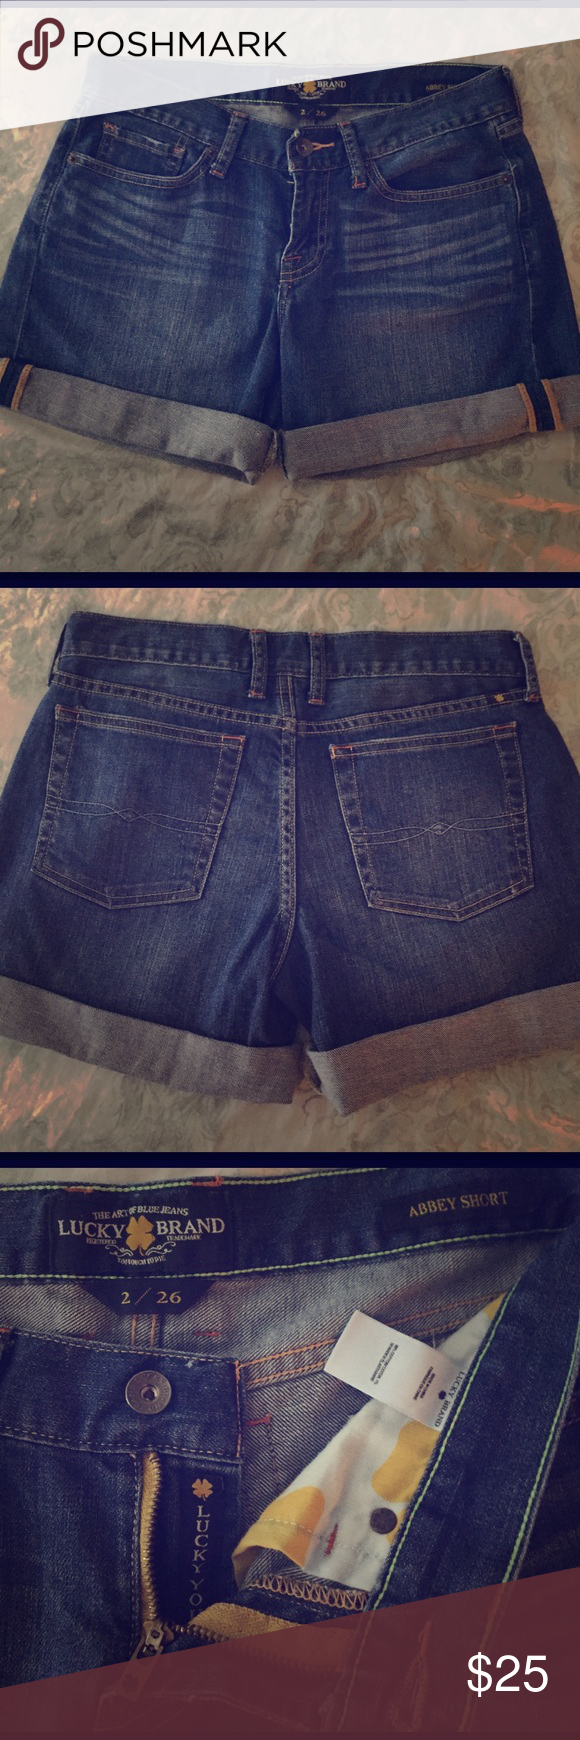 Lucky Brand Jean Shorts Abbey Double Roll Short - Style 7w11526 H212 Lucky Brand Shorts Jean Shorts